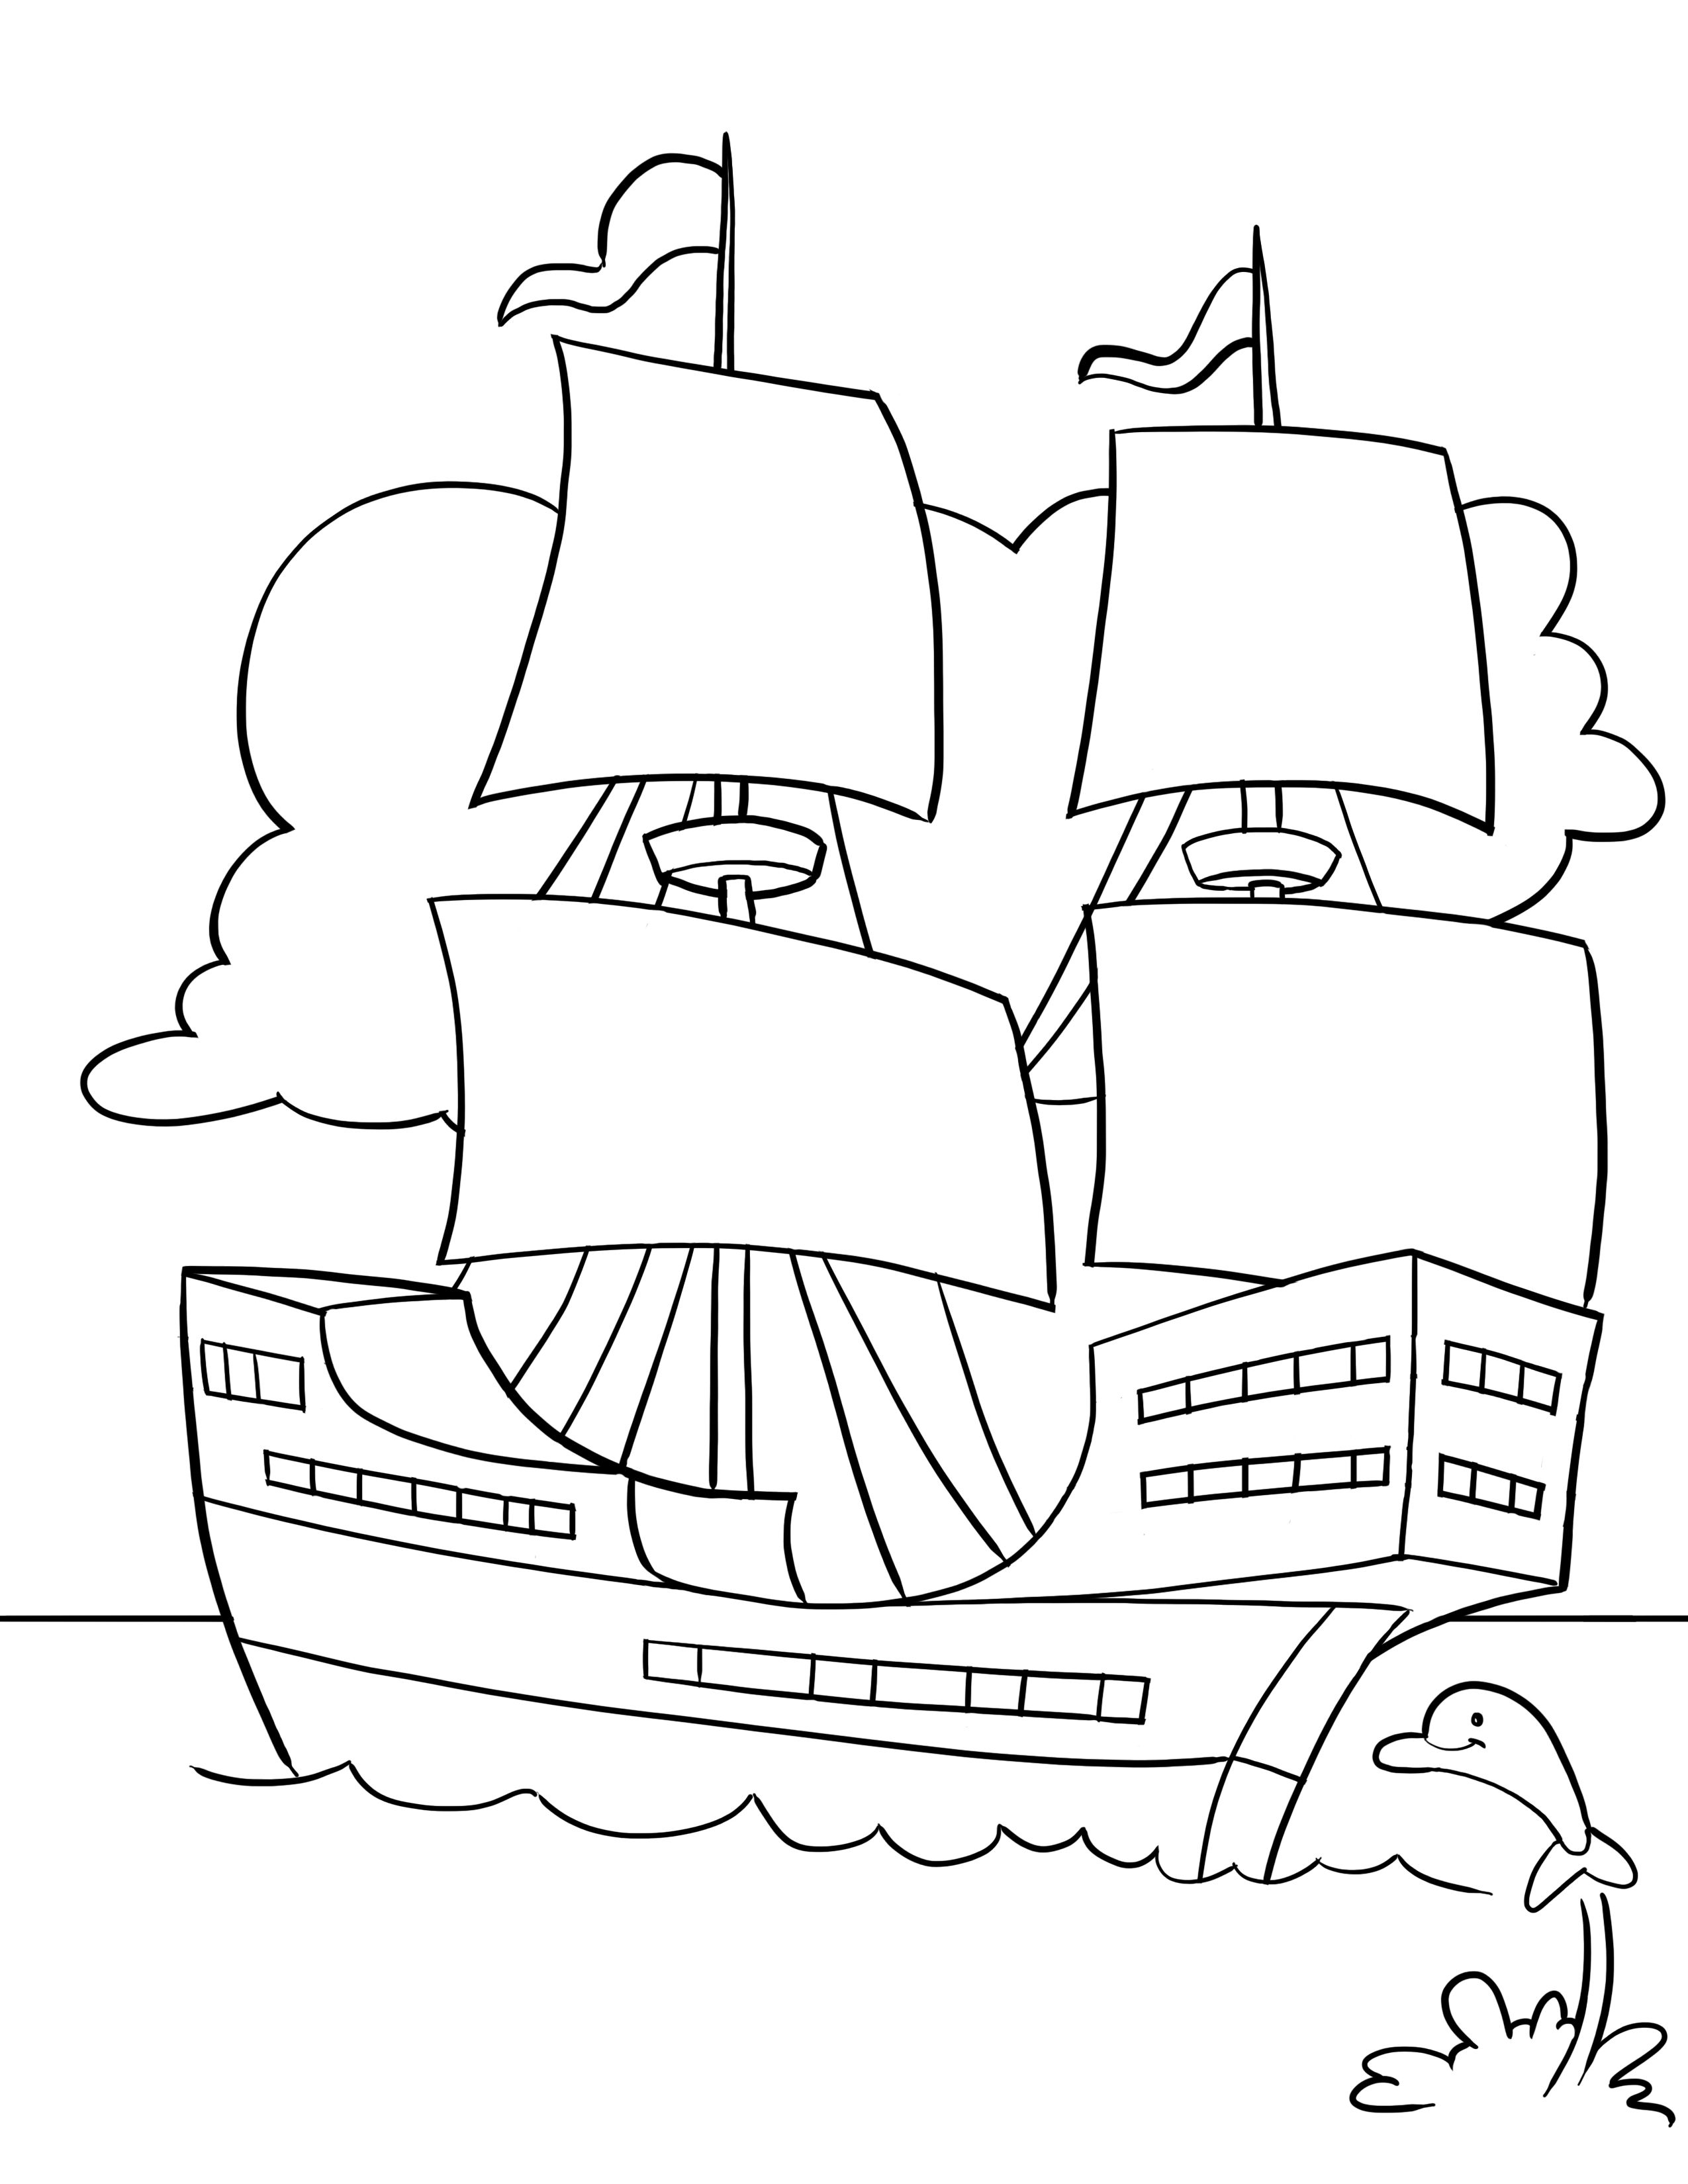 preschool printable thanksgiving coloring pages - photo#49